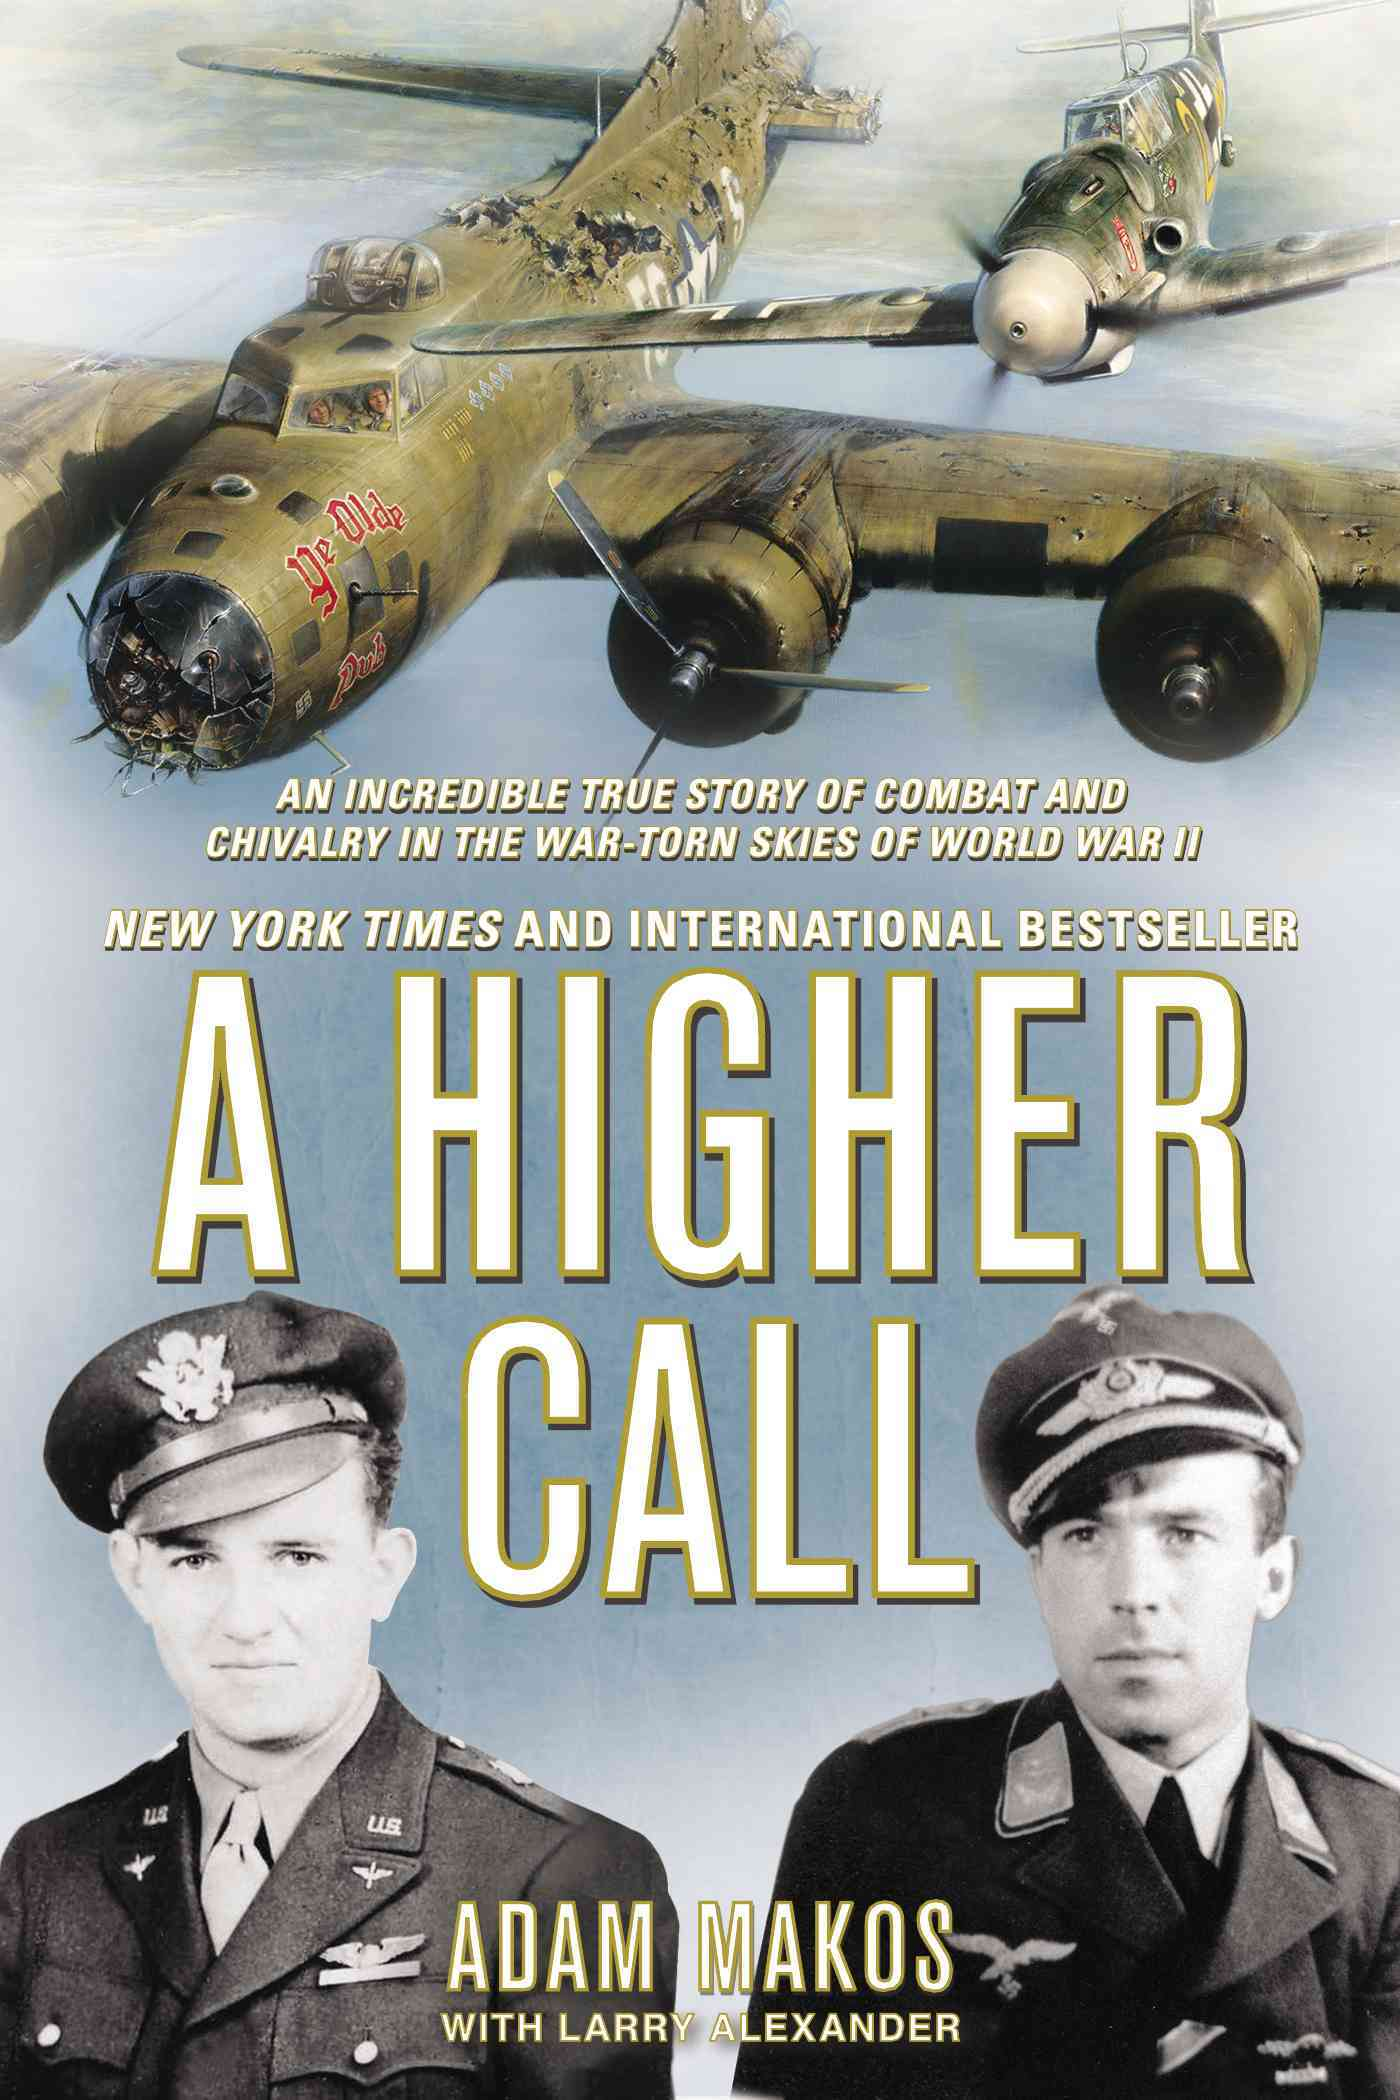 A Higher Call: An Incredible True Story of Combat and Chivalry in the War-Torn Skies of World War II (Paperback)